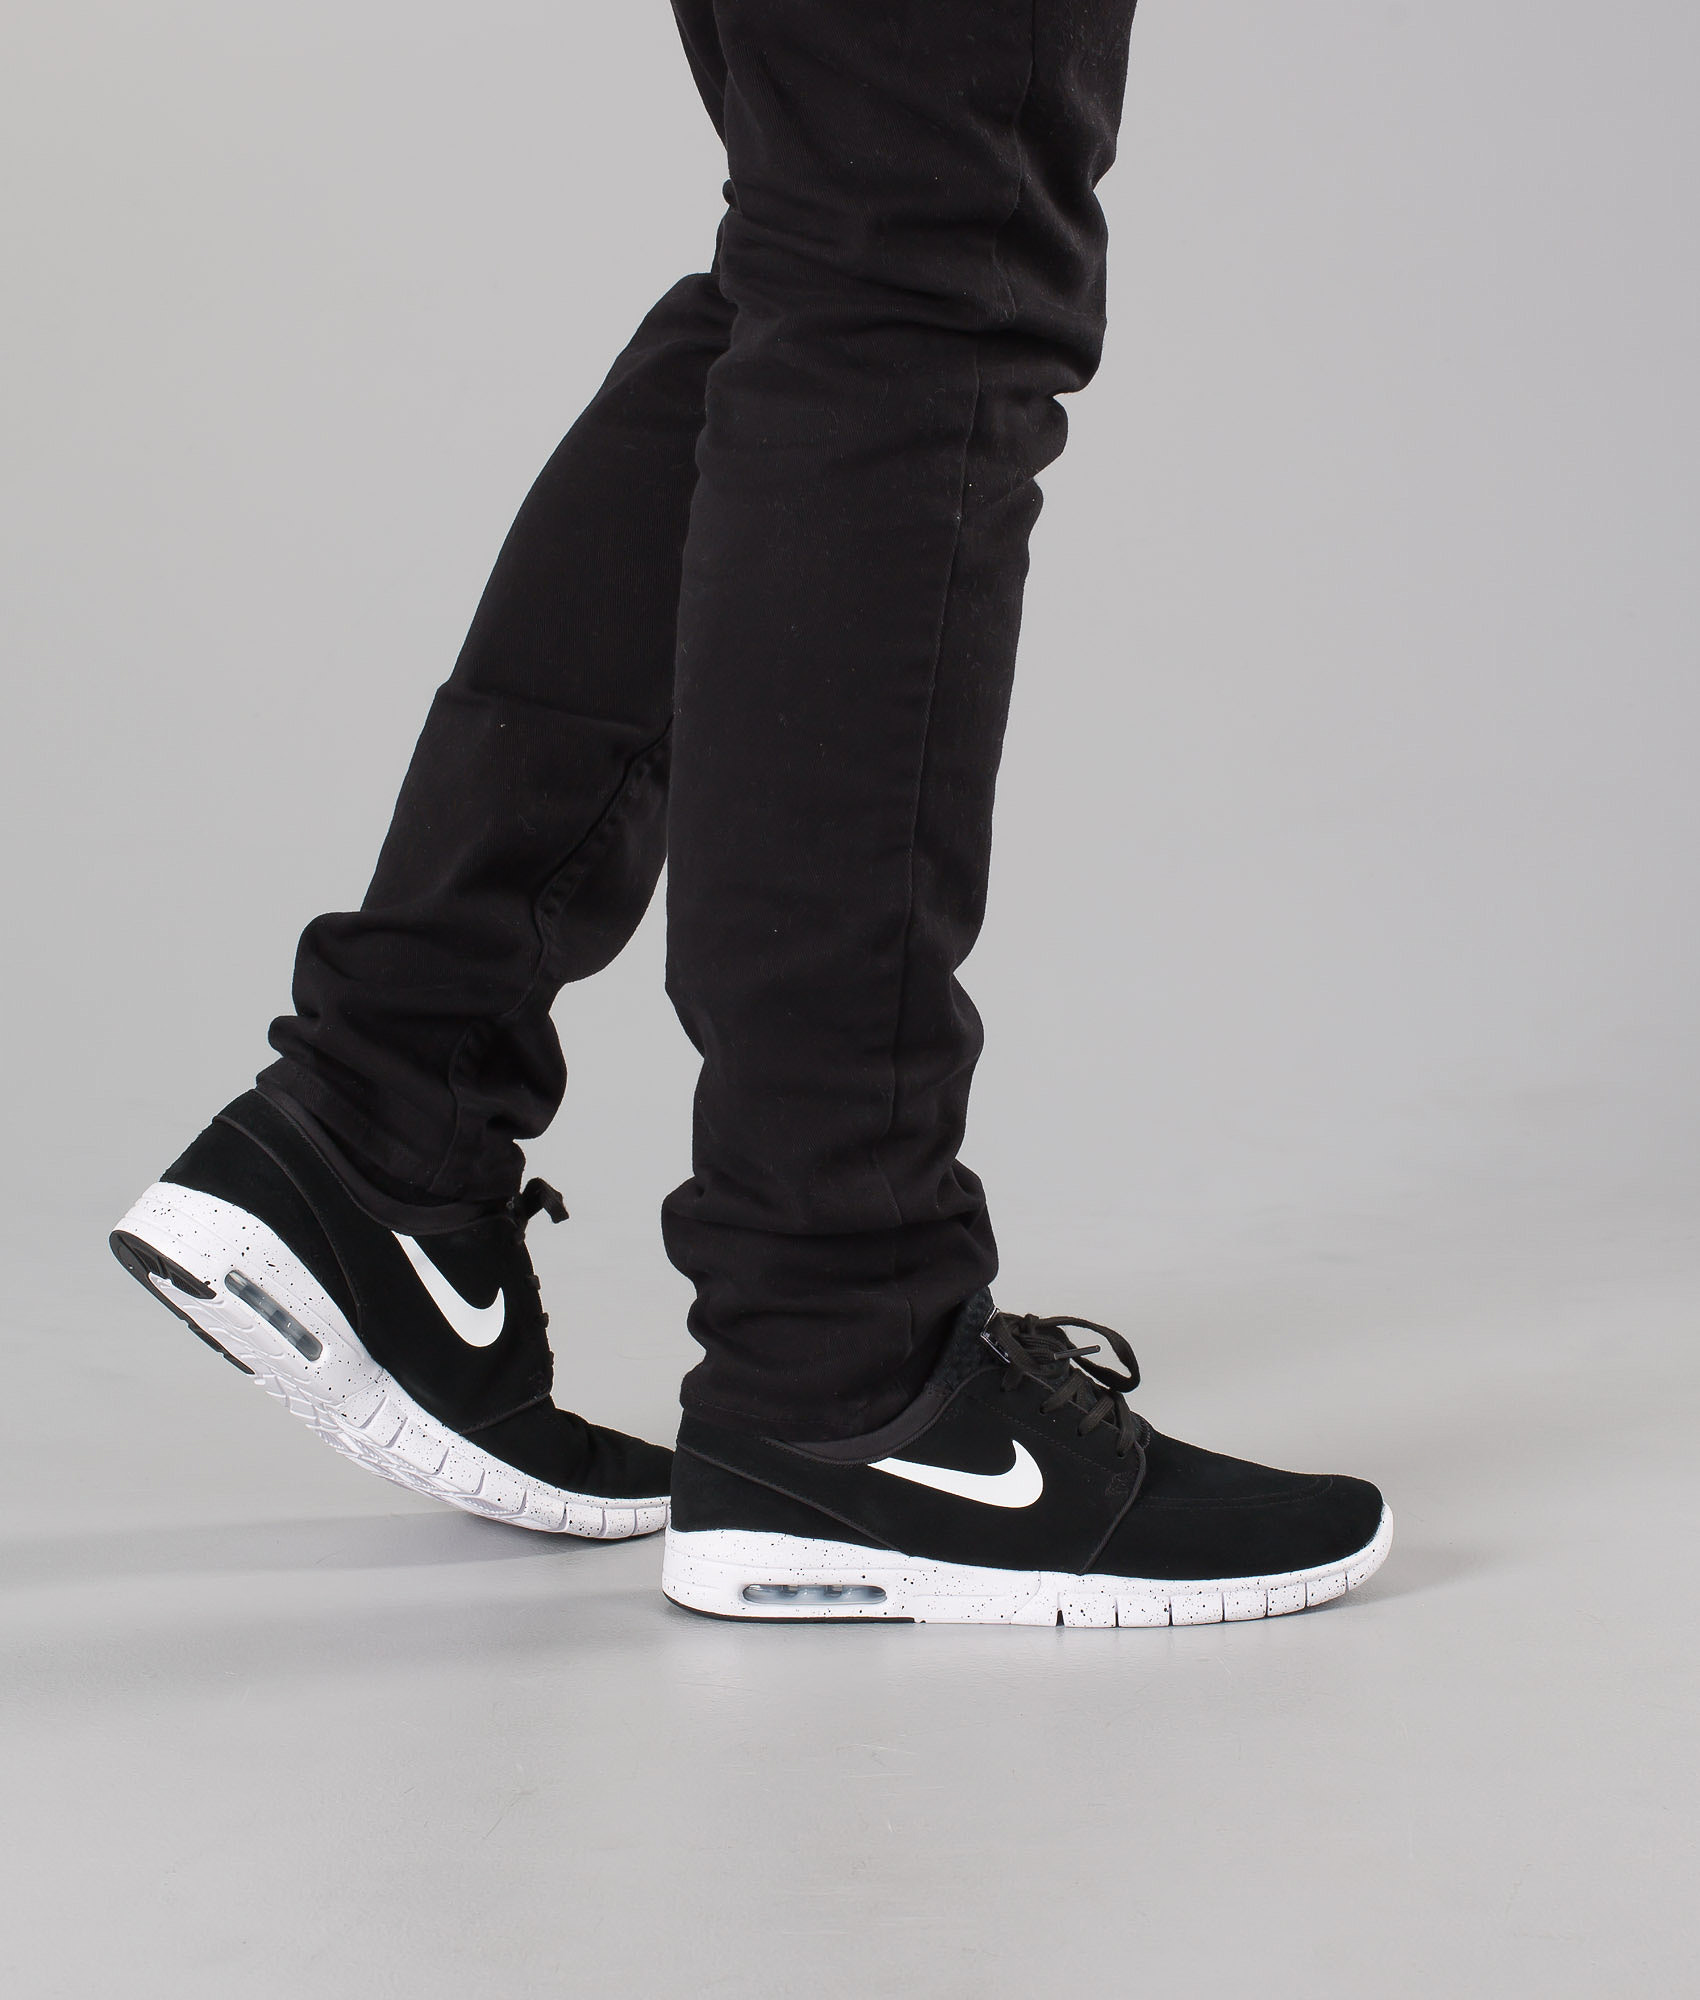 differently 1d0a7 7be4b Nike Stefan Janoski Max Leather Shoes